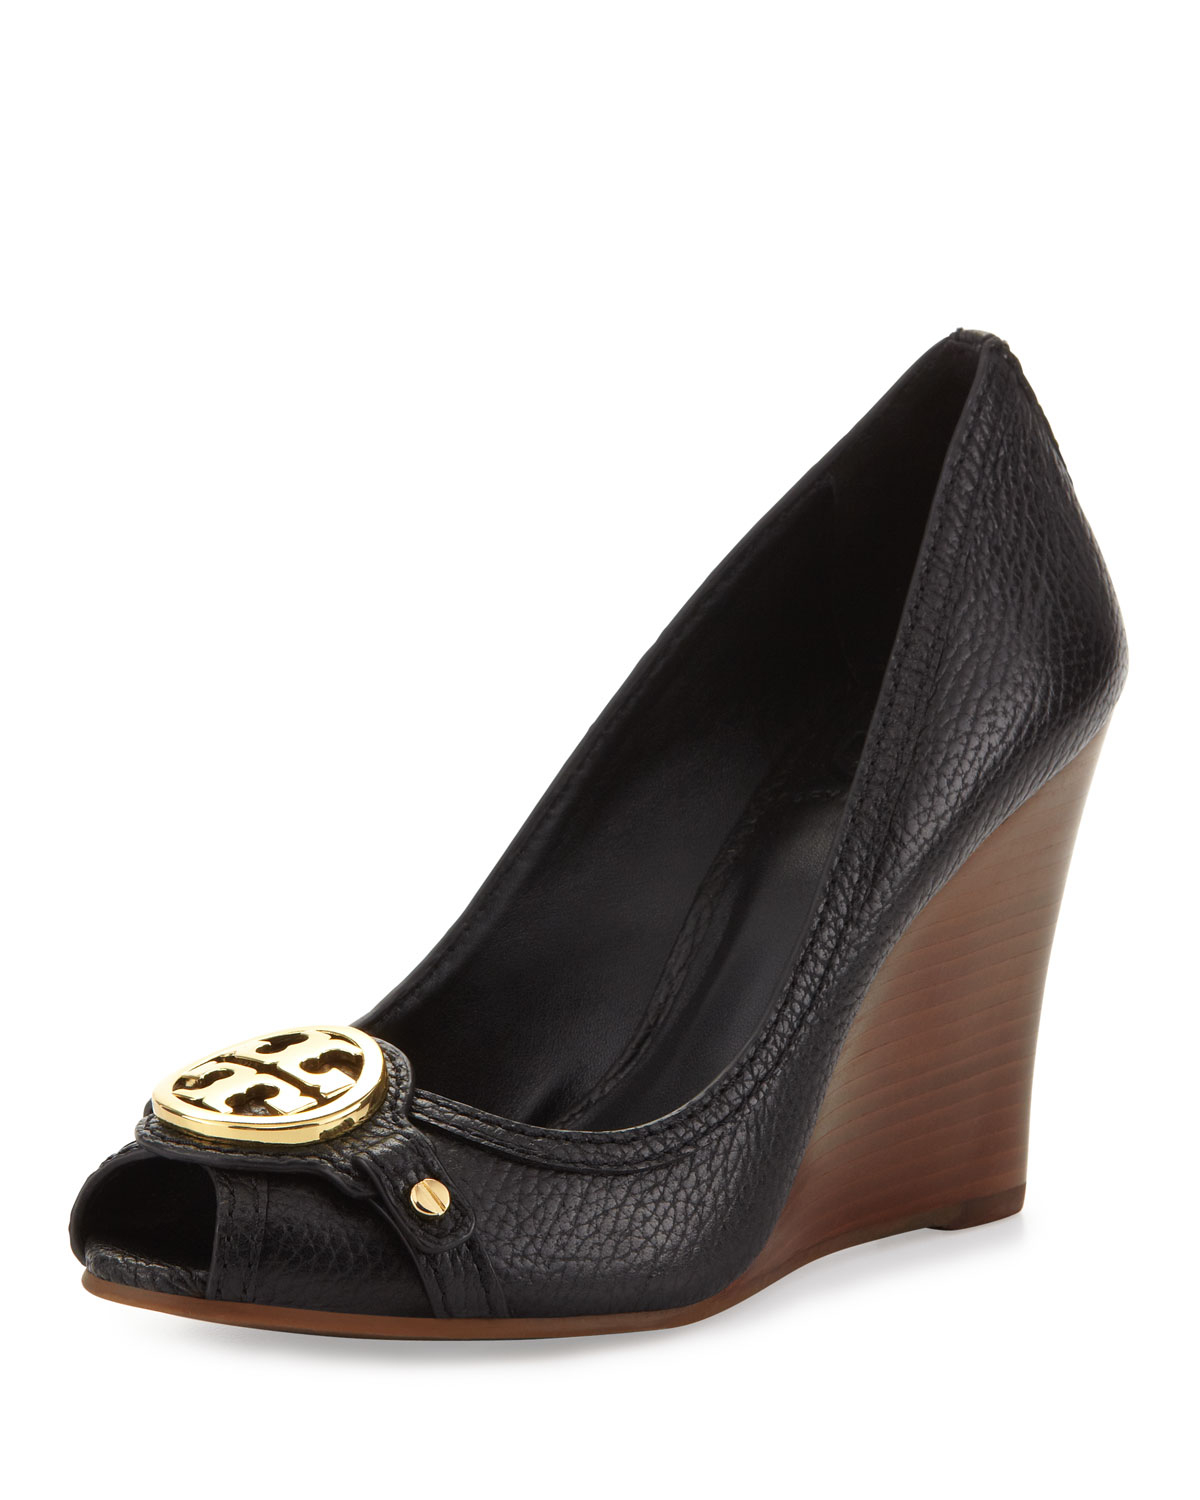 Tory Burch Black And White Shoes